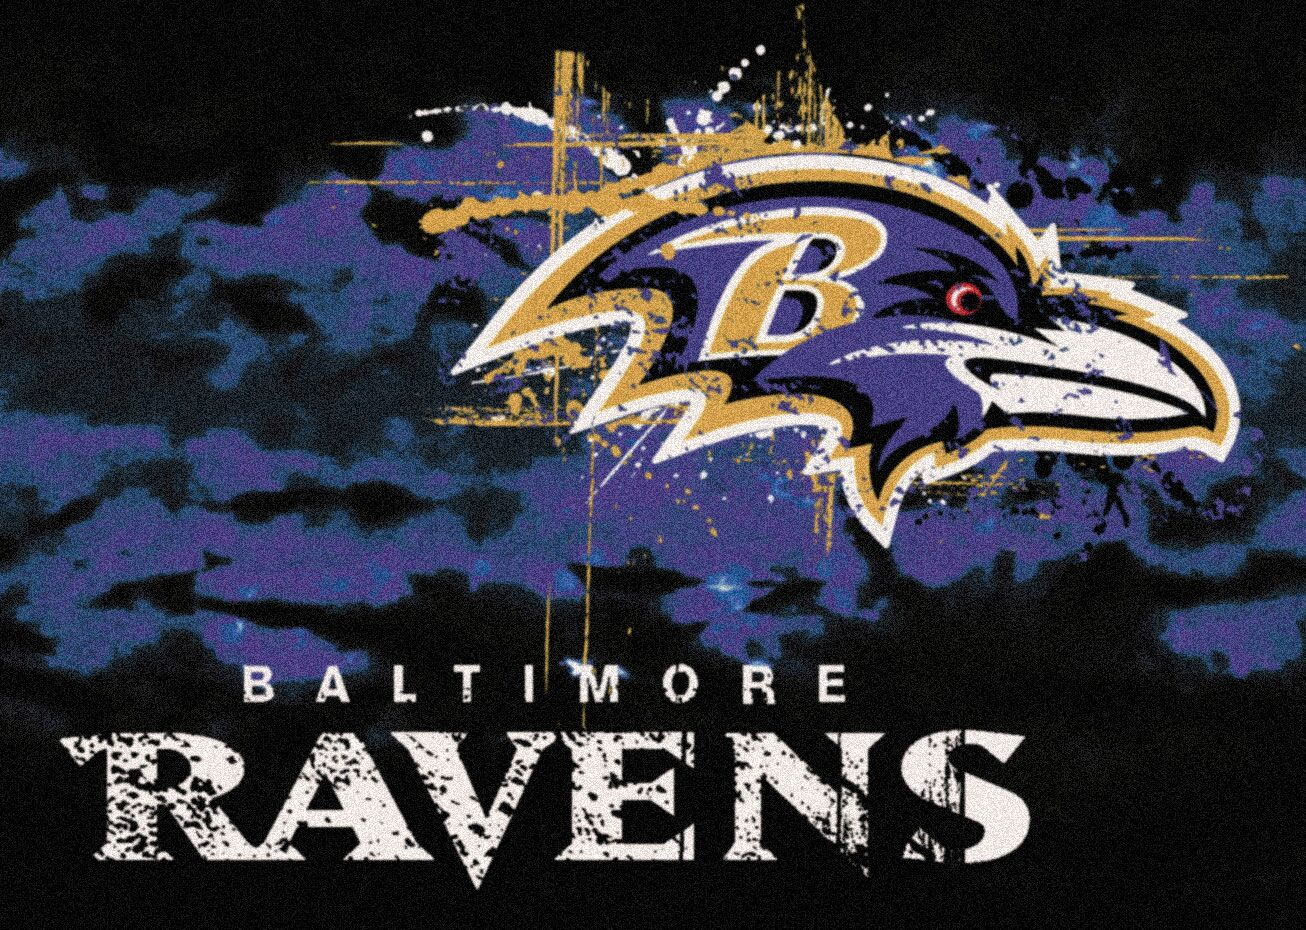 NFL Team Fade Novelty Rug NFL Team: Baltimore Ravens